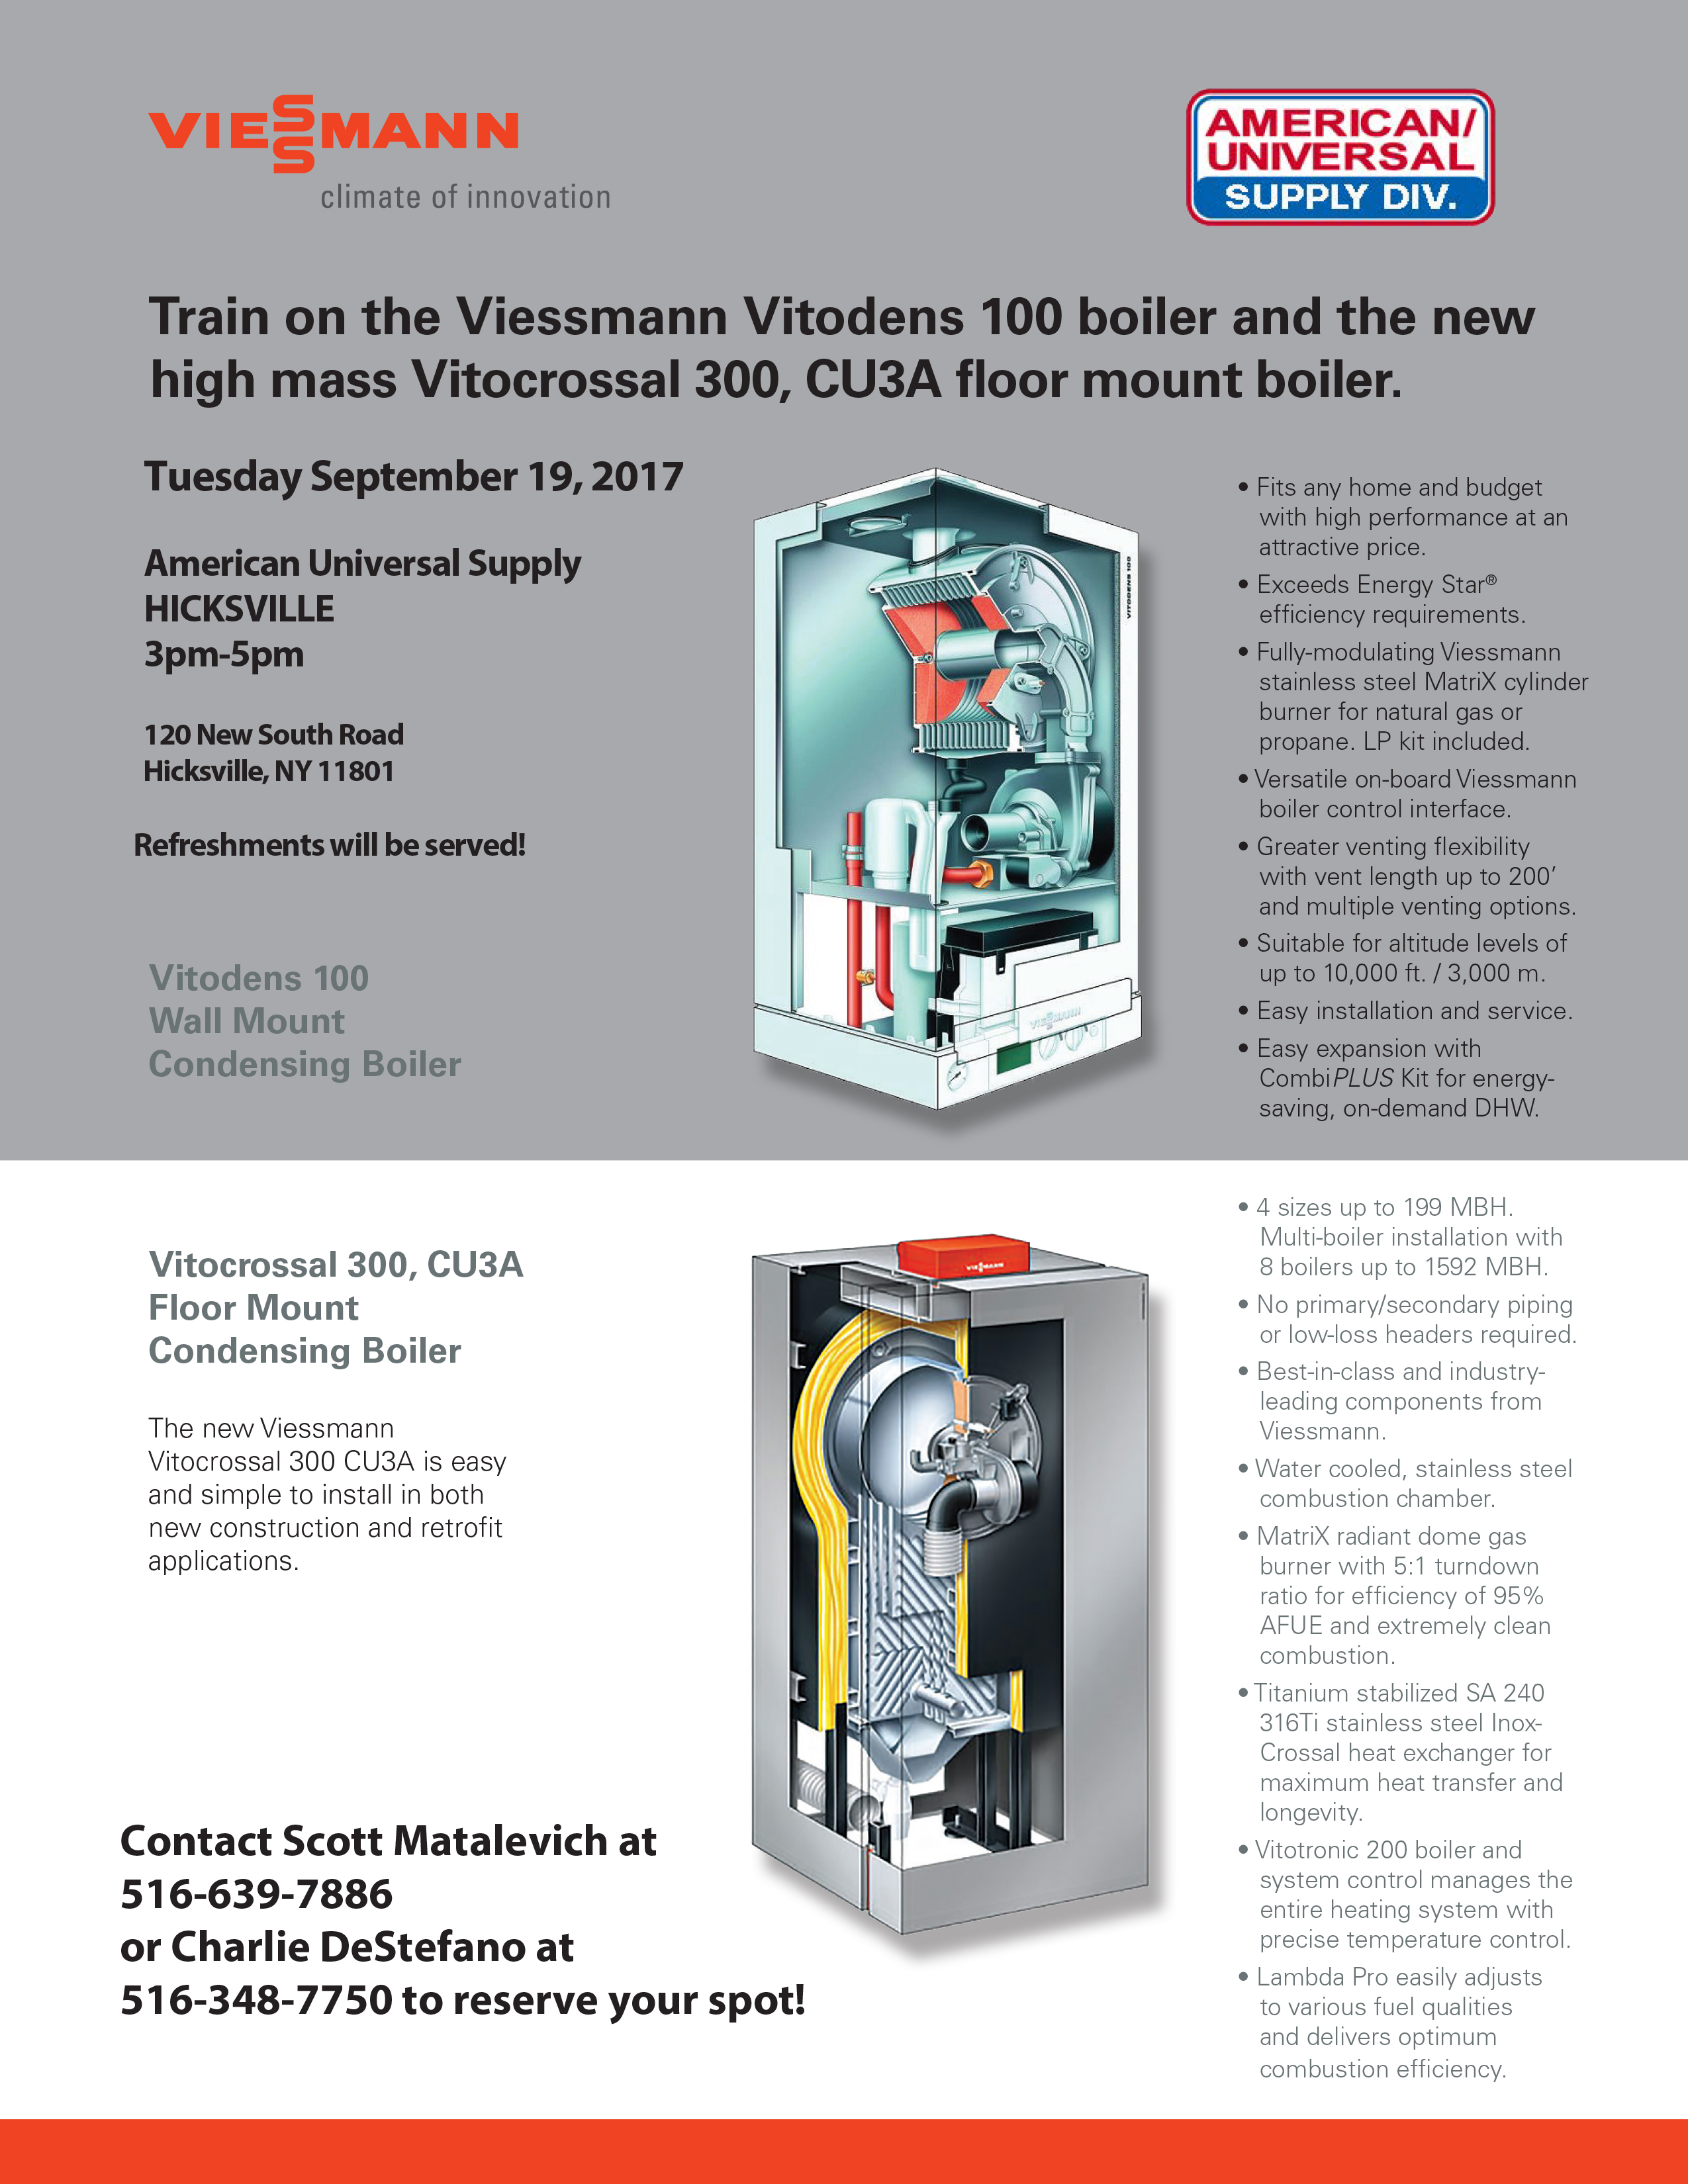 macc news train on the viessmann vitodens 100 boiler and. Black Bedroom Furniture Sets. Home Design Ideas